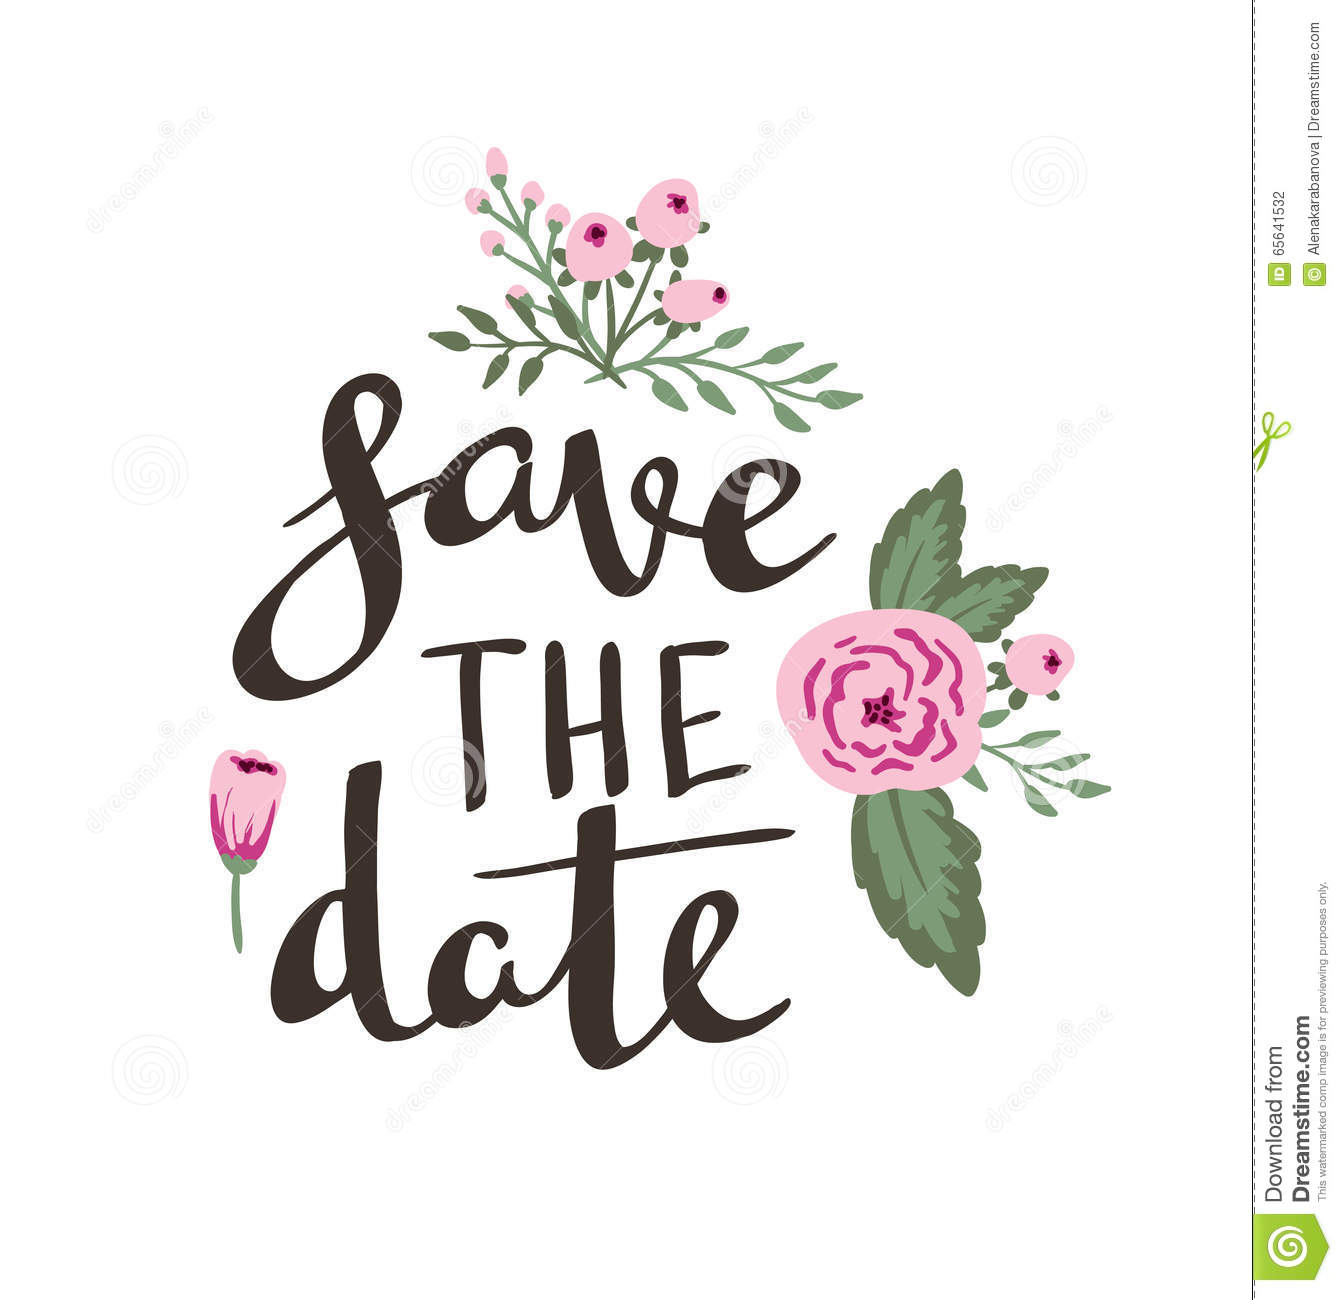 poster template save the date wedding  marriage  save firefly clipart/background firefly clipart black and white